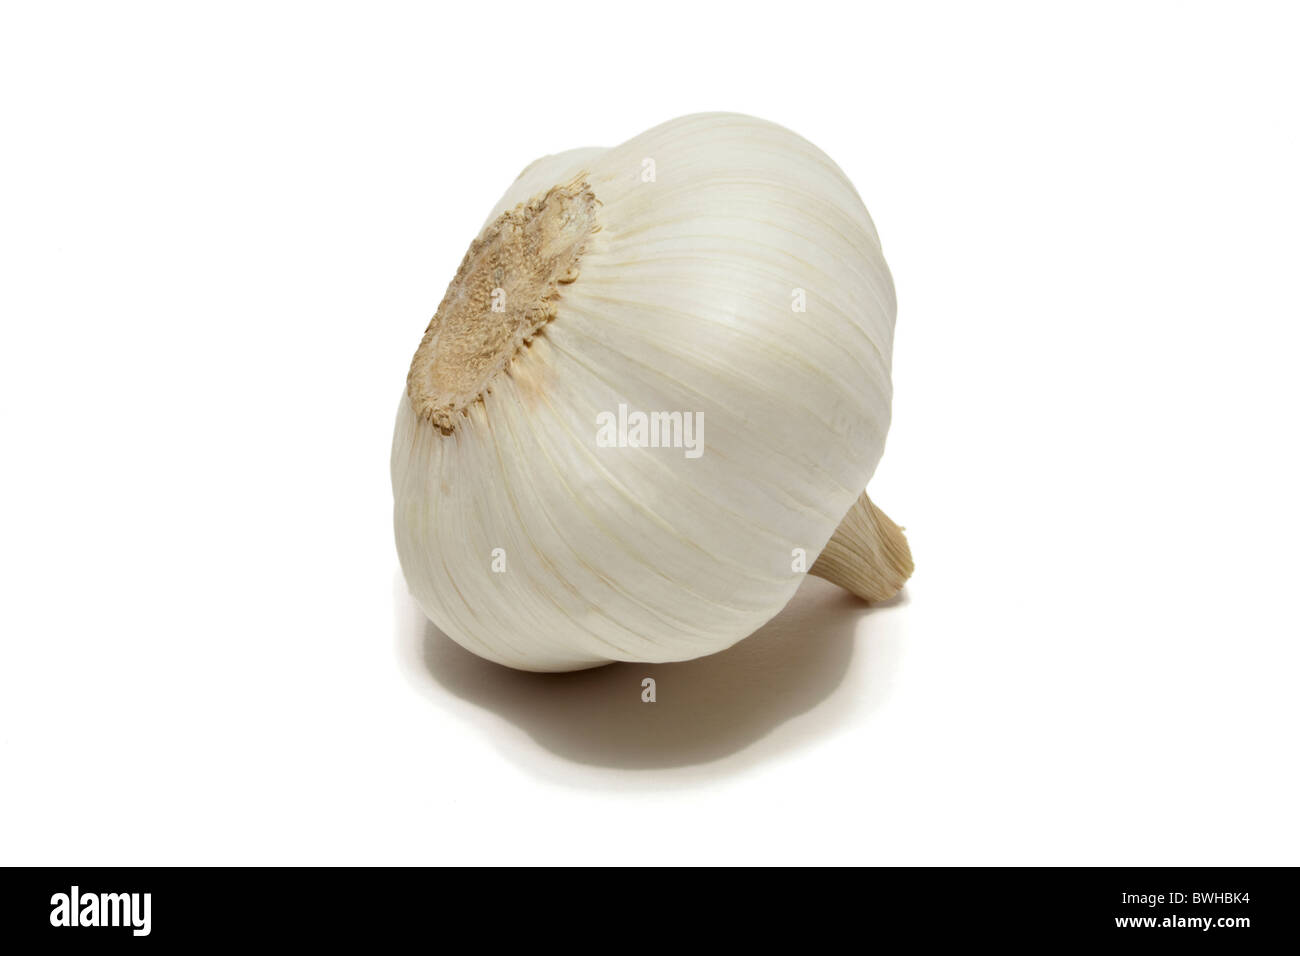 Garlic - Stock Image